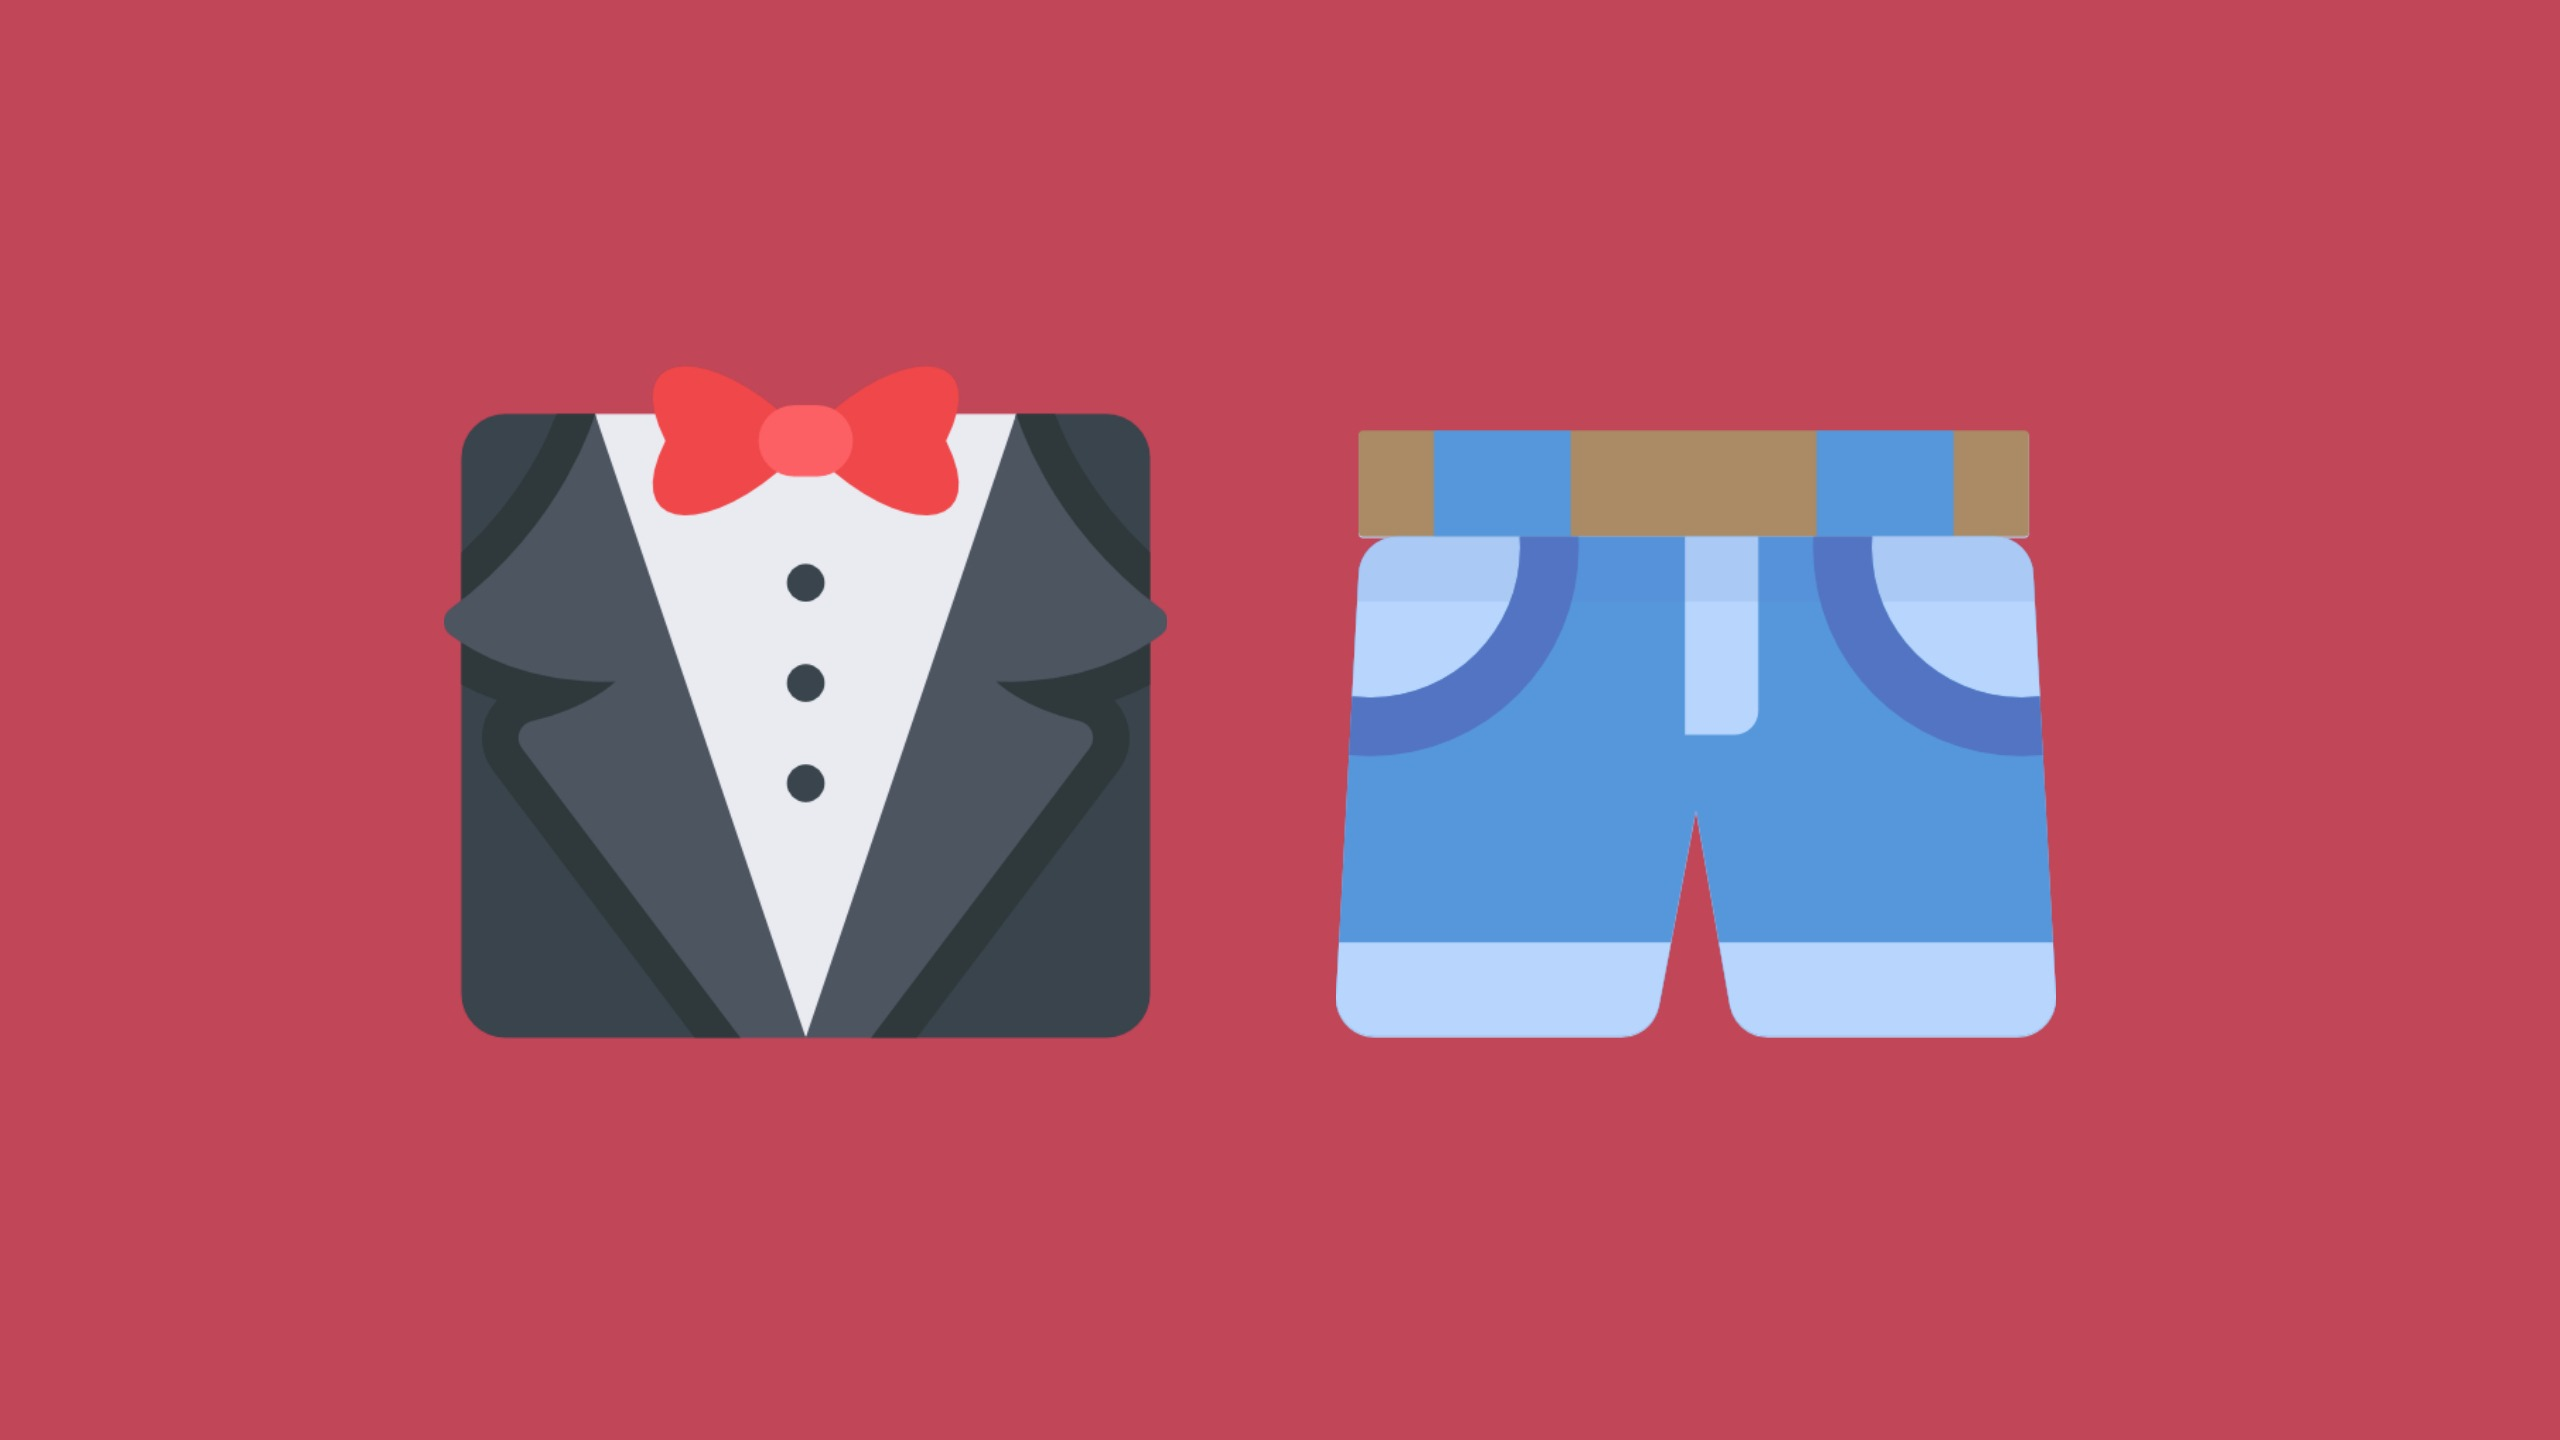 An image of a tuxedo and a pair of jeans sit side-by-side on a red background to symbolise formal and informal letters